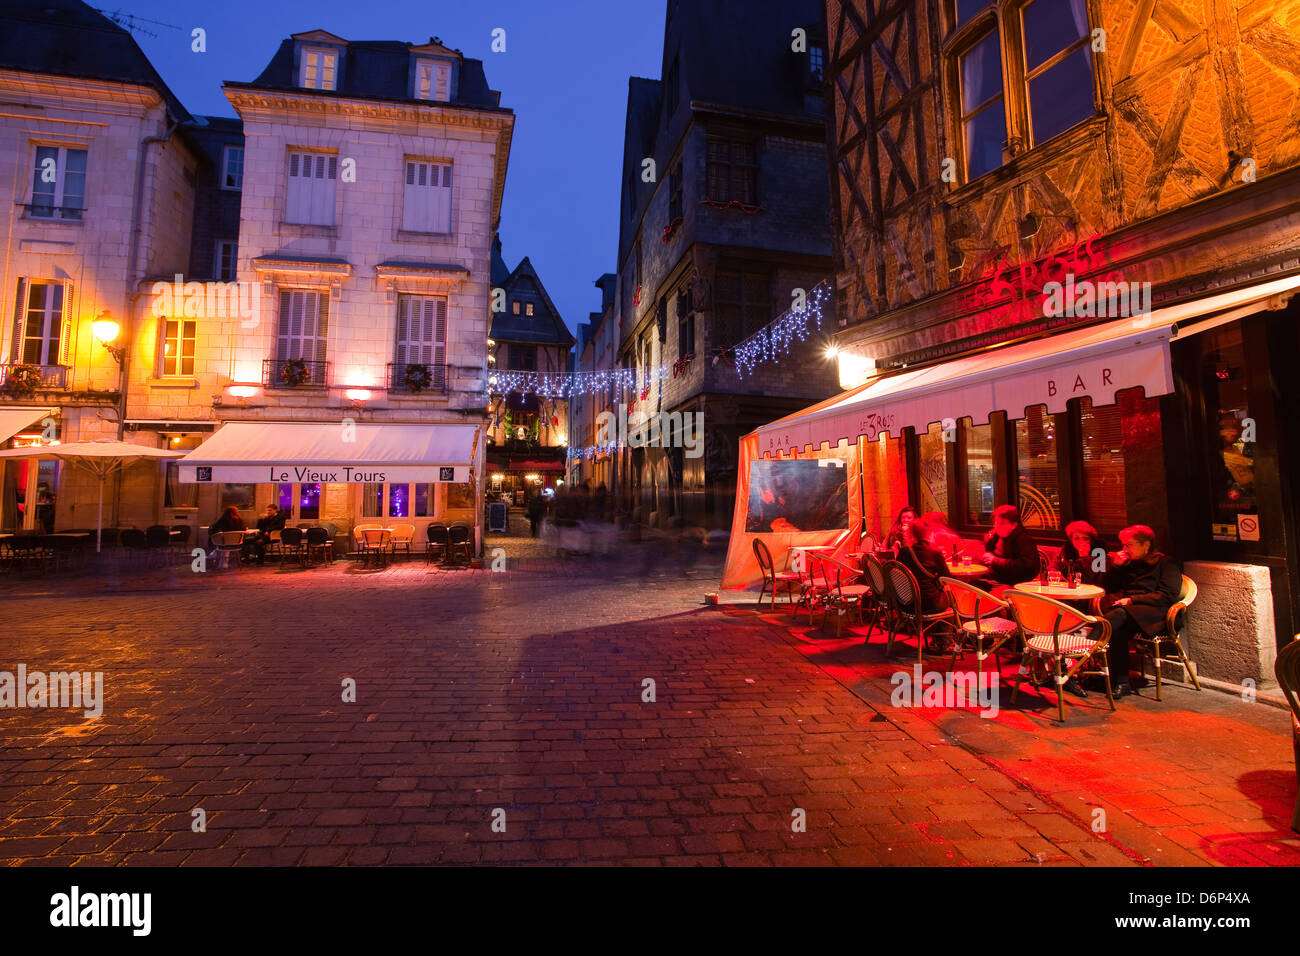 Place Plumereau in Vieux Tours on a late December evening, Tours, Indre-et-Loire, France, Europe - Stock Image